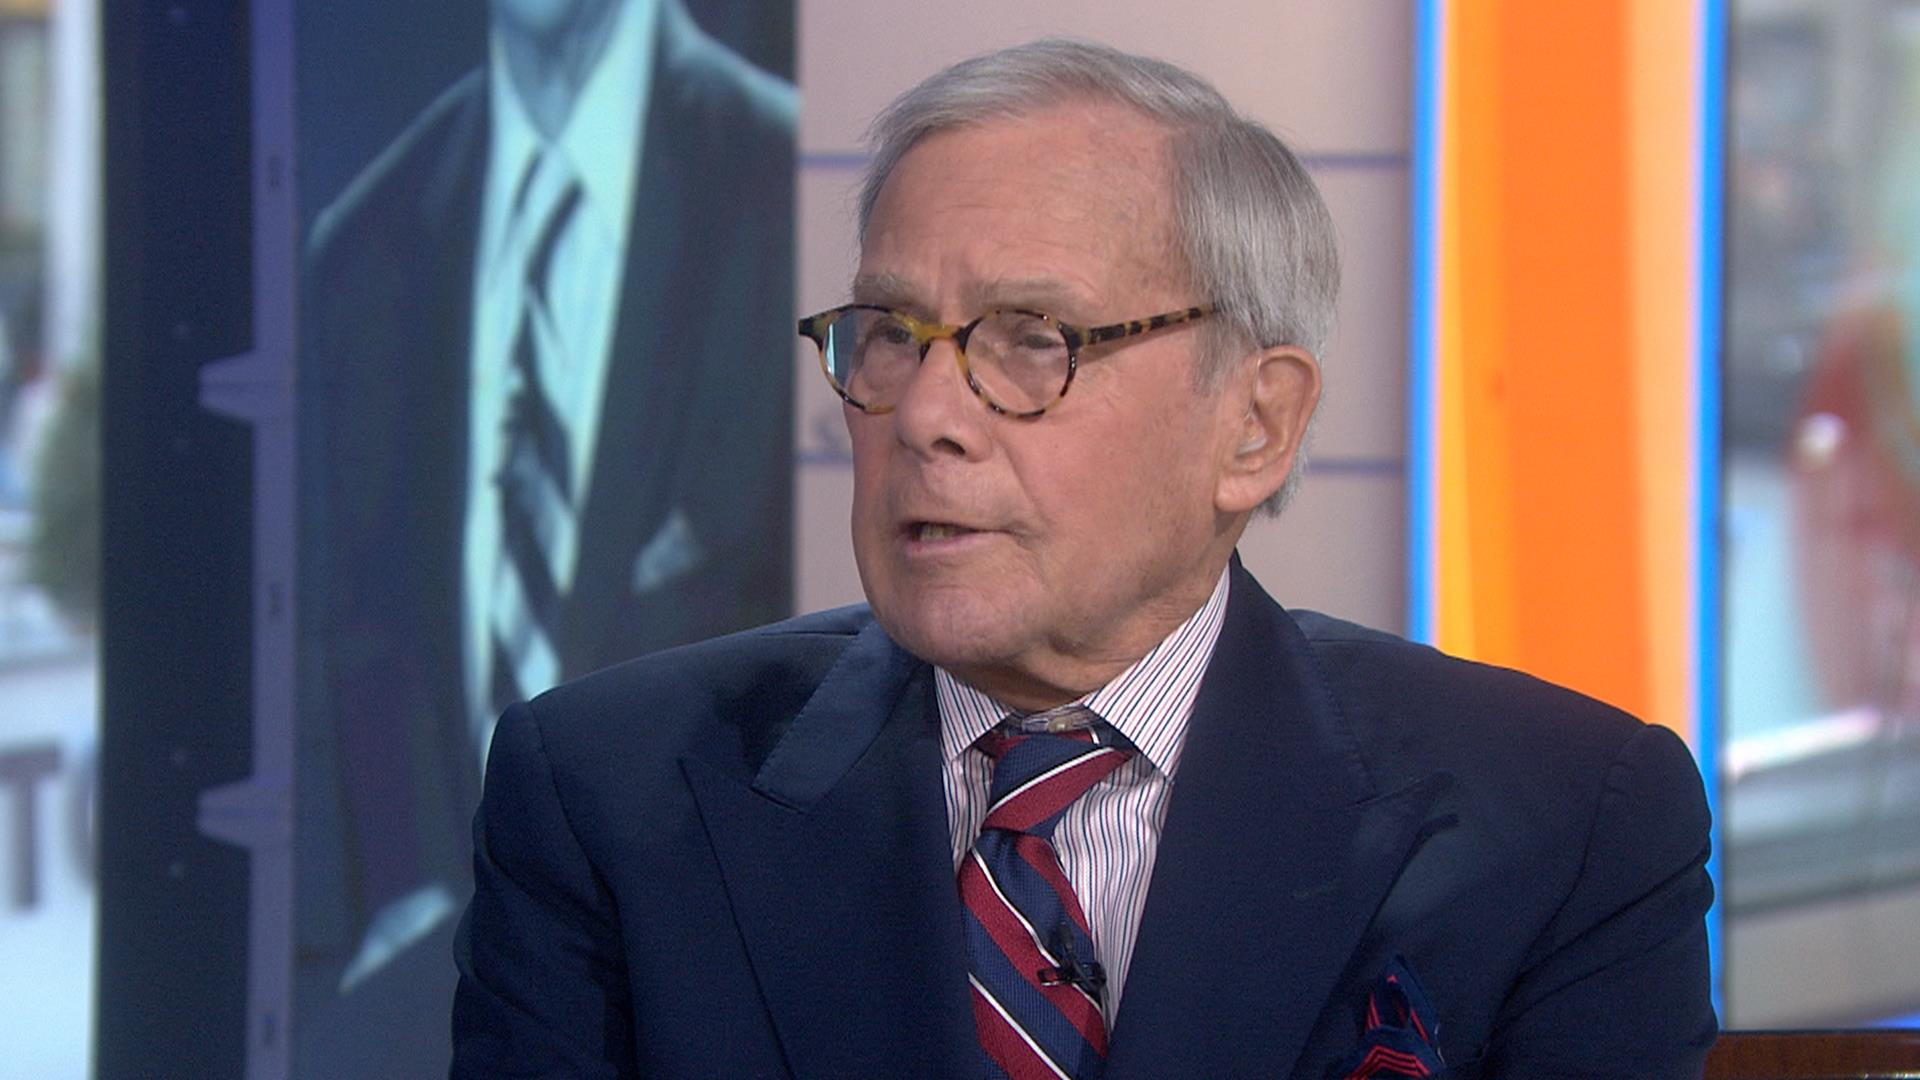 1968 by tom brokaw Rent 1968 with tom brokaw (2008) and other movies & tv shows on blu-ray & dvd 1-month free trial fast, free delivery no late fees.